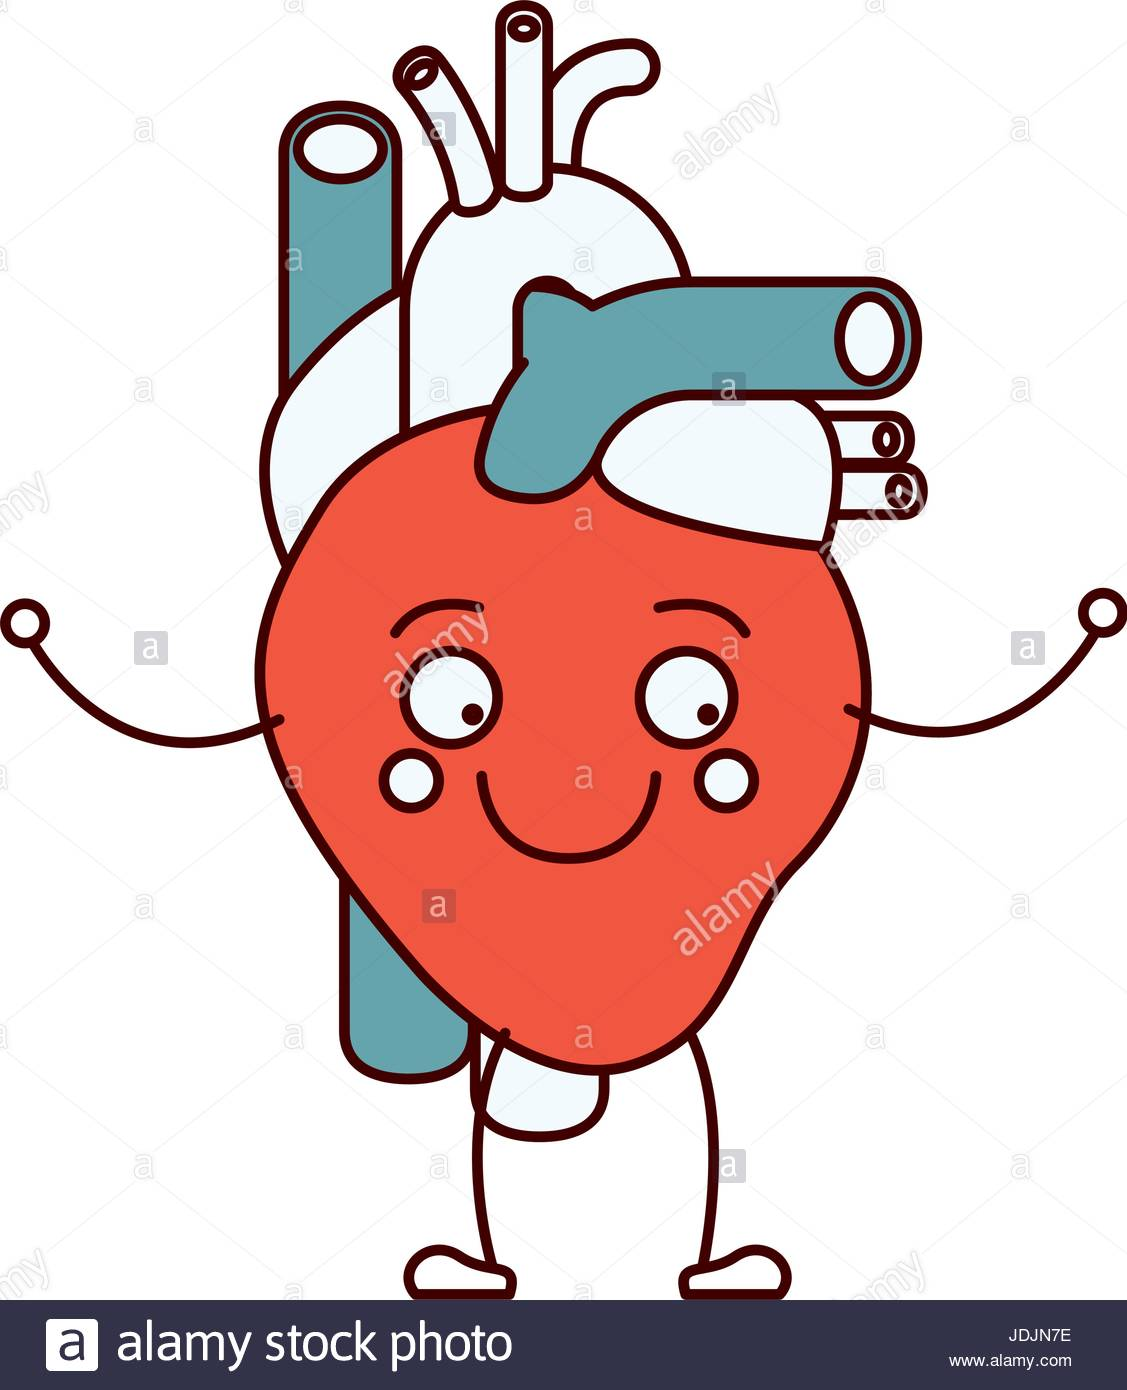 Circulatory System Clipart At Getdrawings Free For Personal